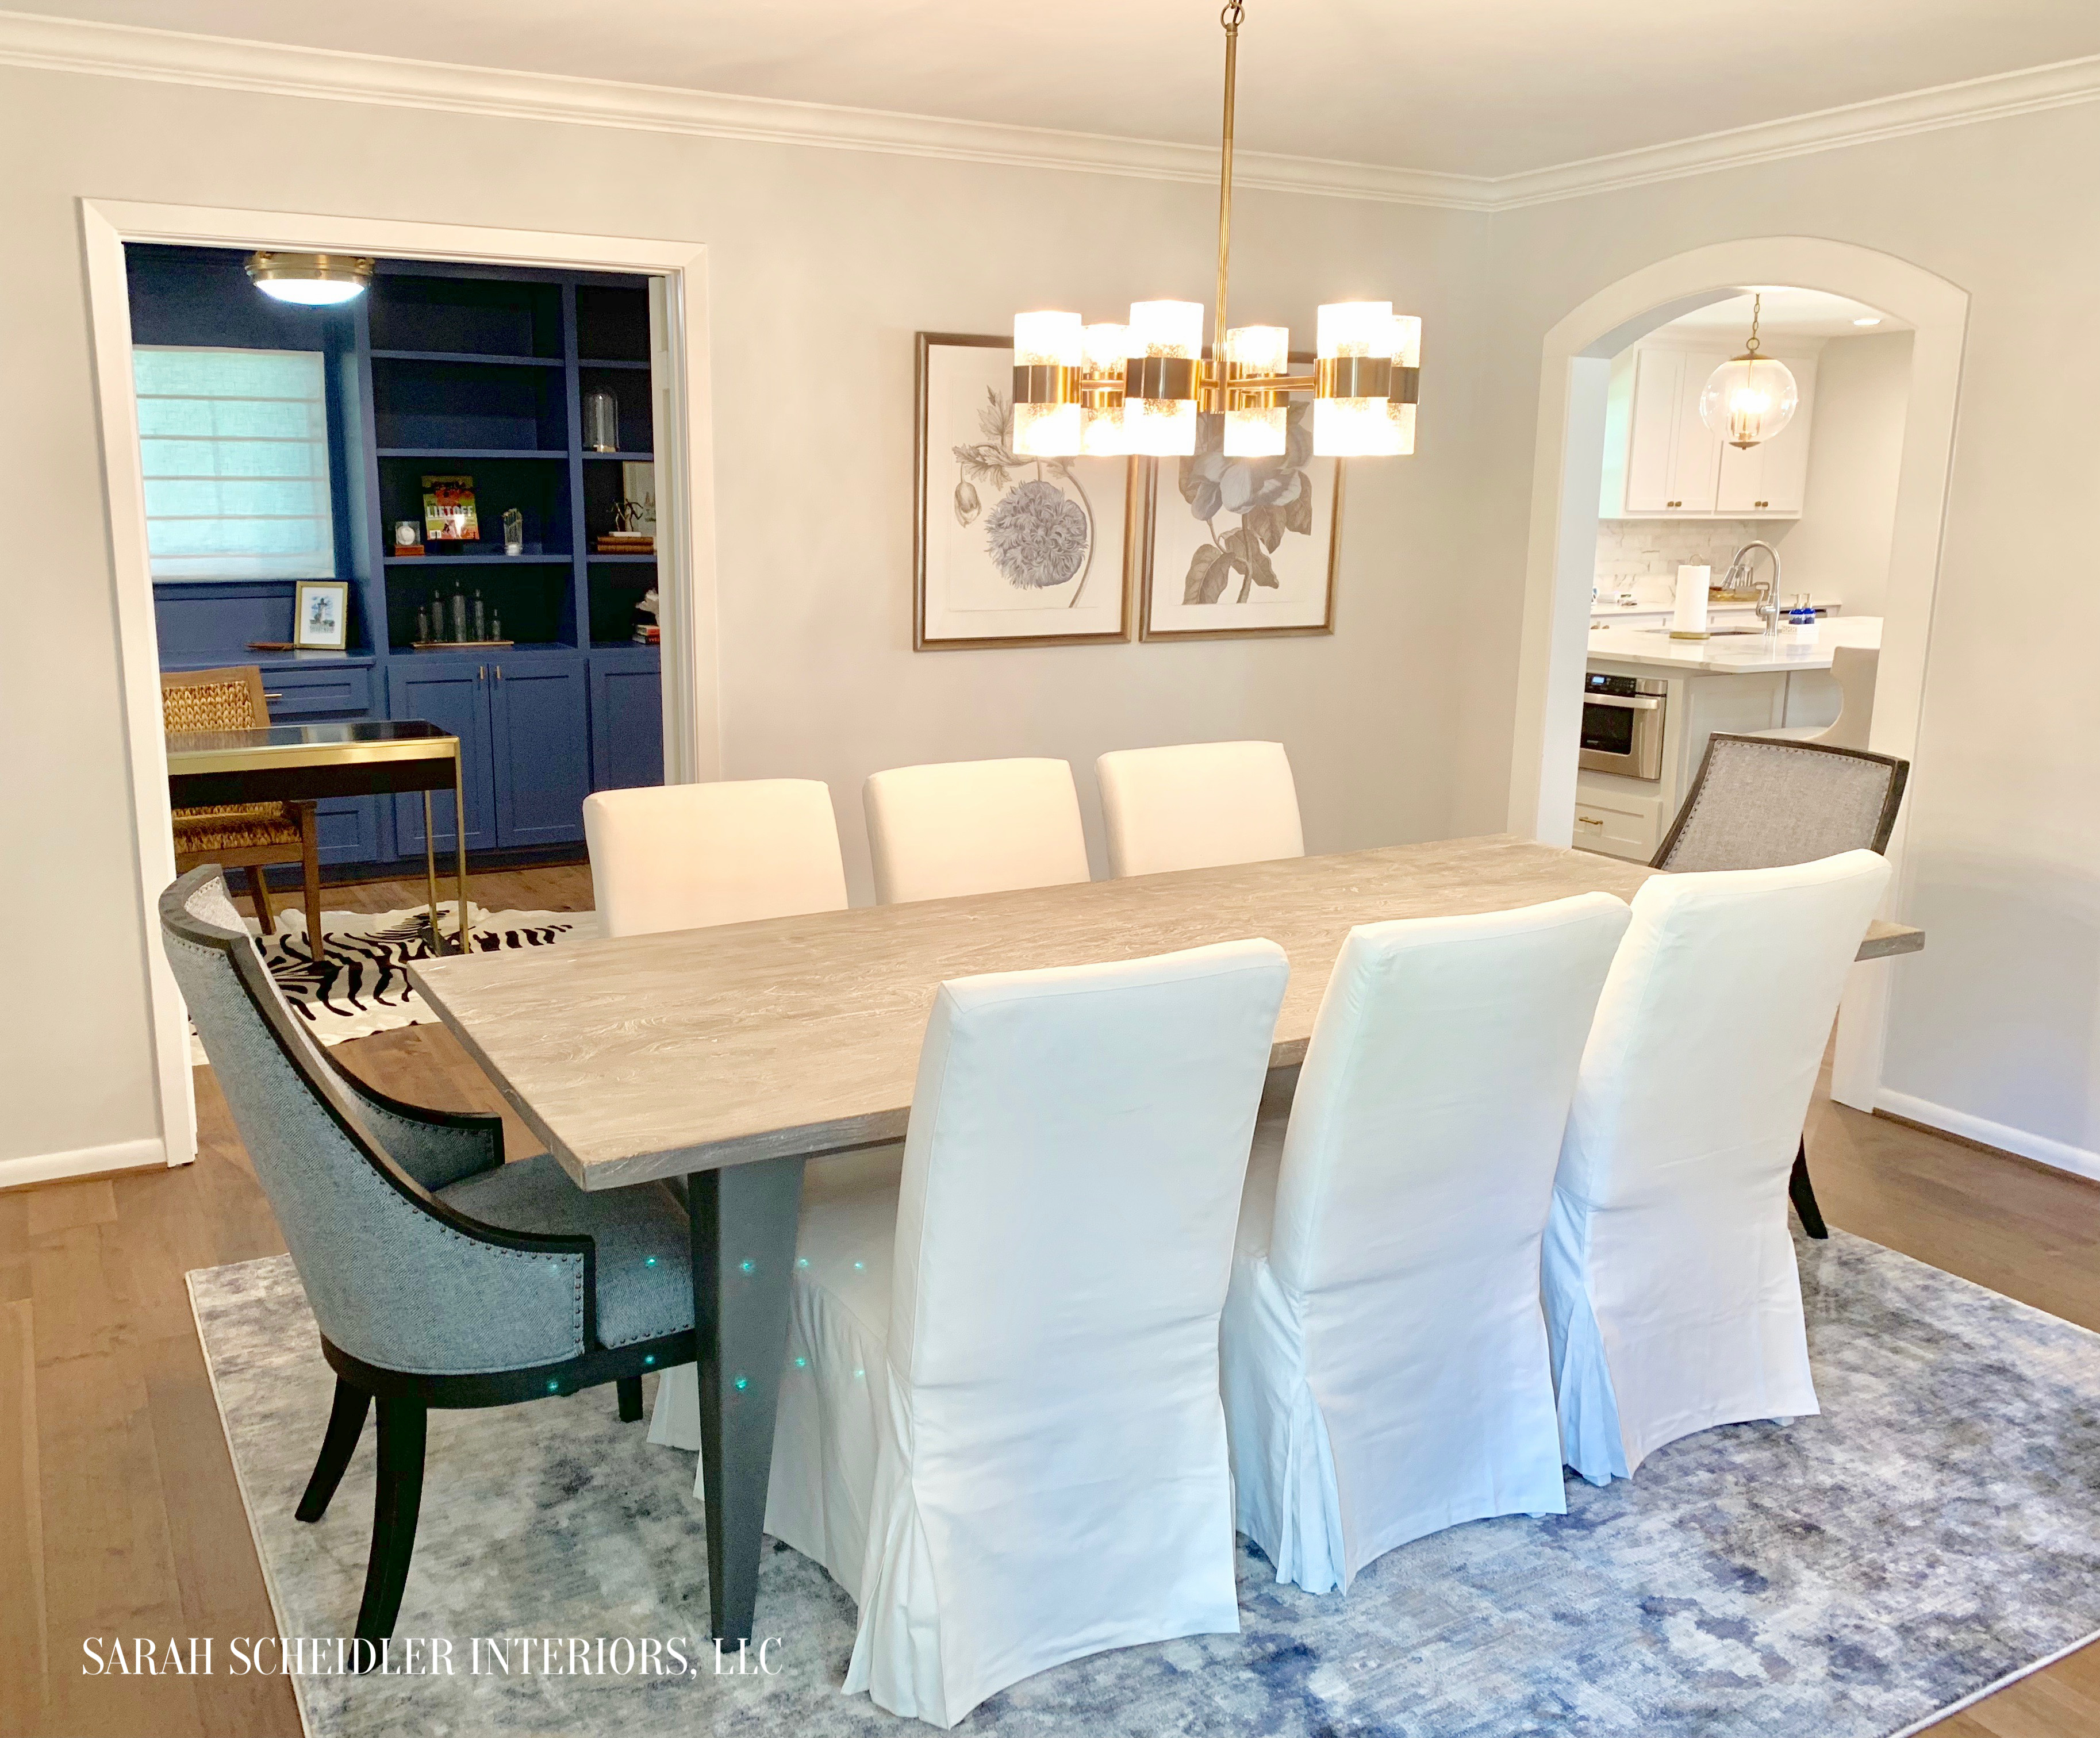 Dining Room Design with Blue Head Chairs, White Slip-Covered Dining Chairs, Botanical Art Prints, and Brass Lighting